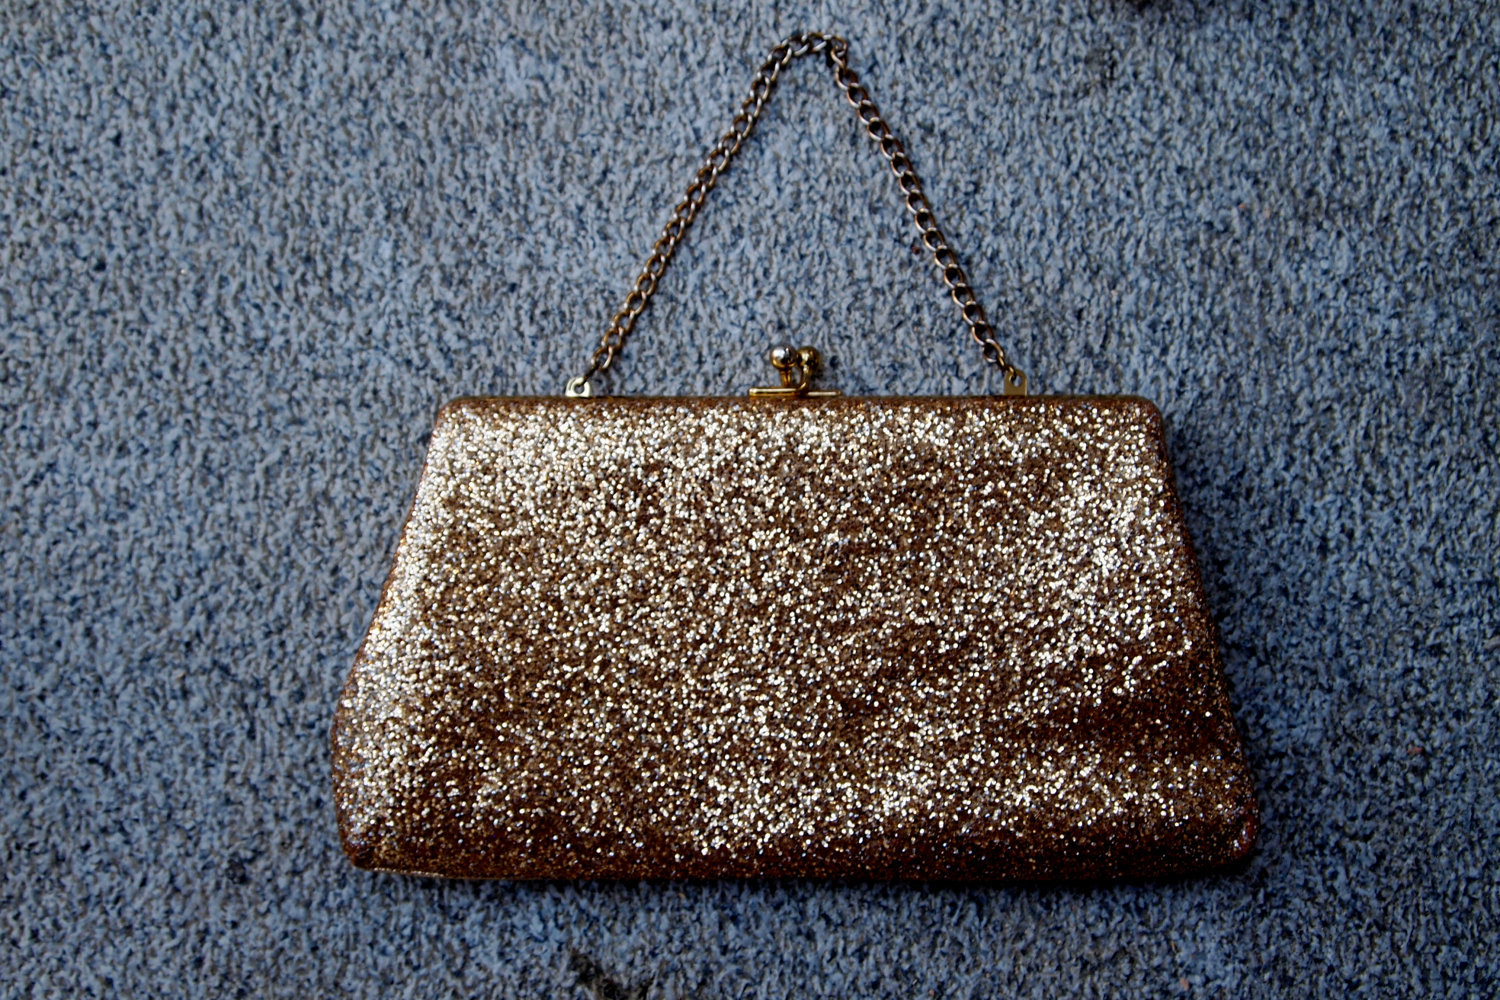 Glittery-gold-wedding-finds-for-glam-handmade-weddings-vintage-clutch.original